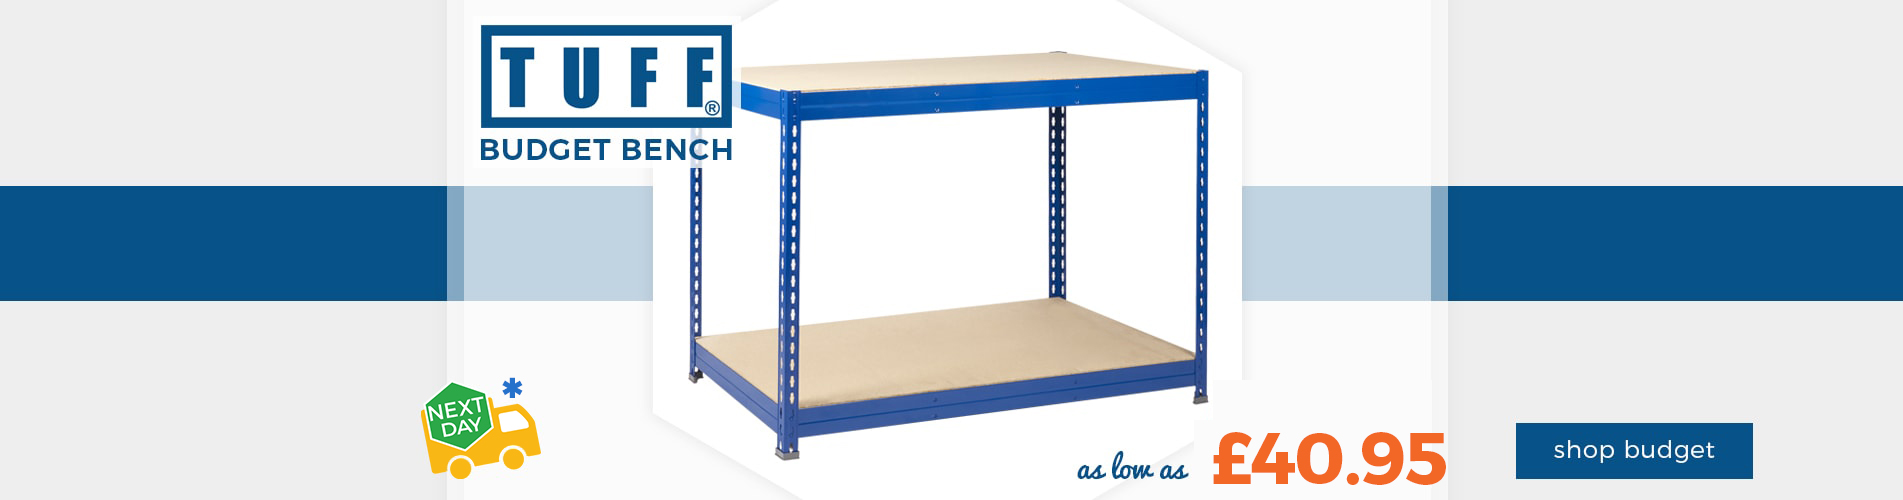 Shop our TUFF Budget Workbenches from £40.95 with Next Day Delivery